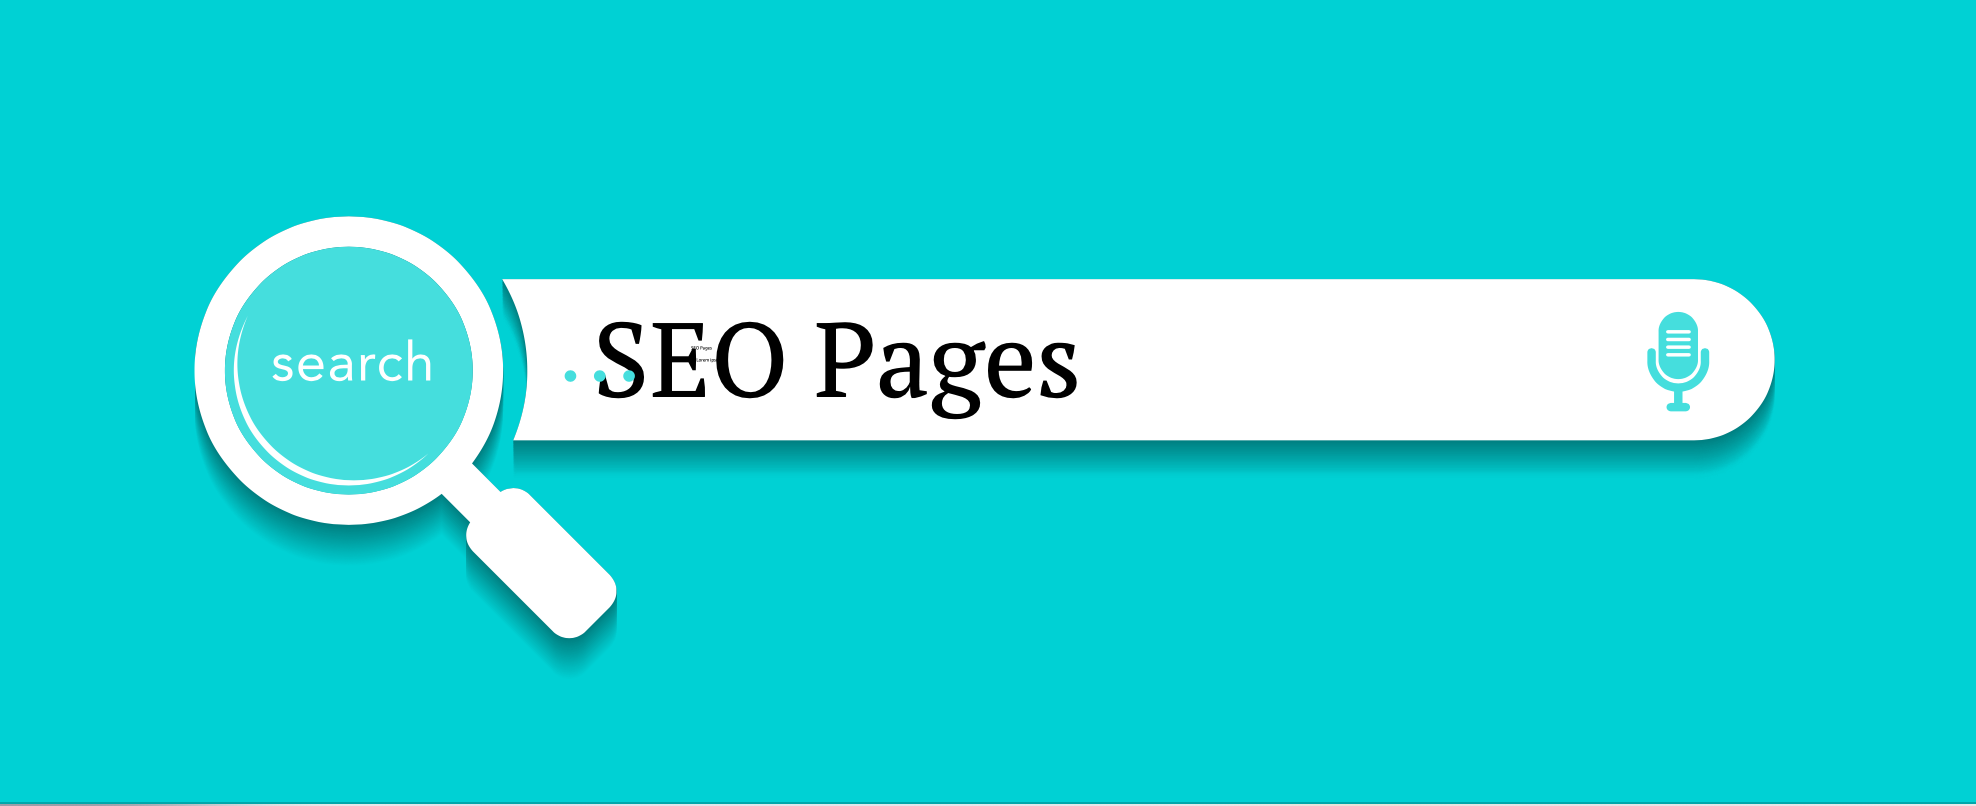 SEO Pages